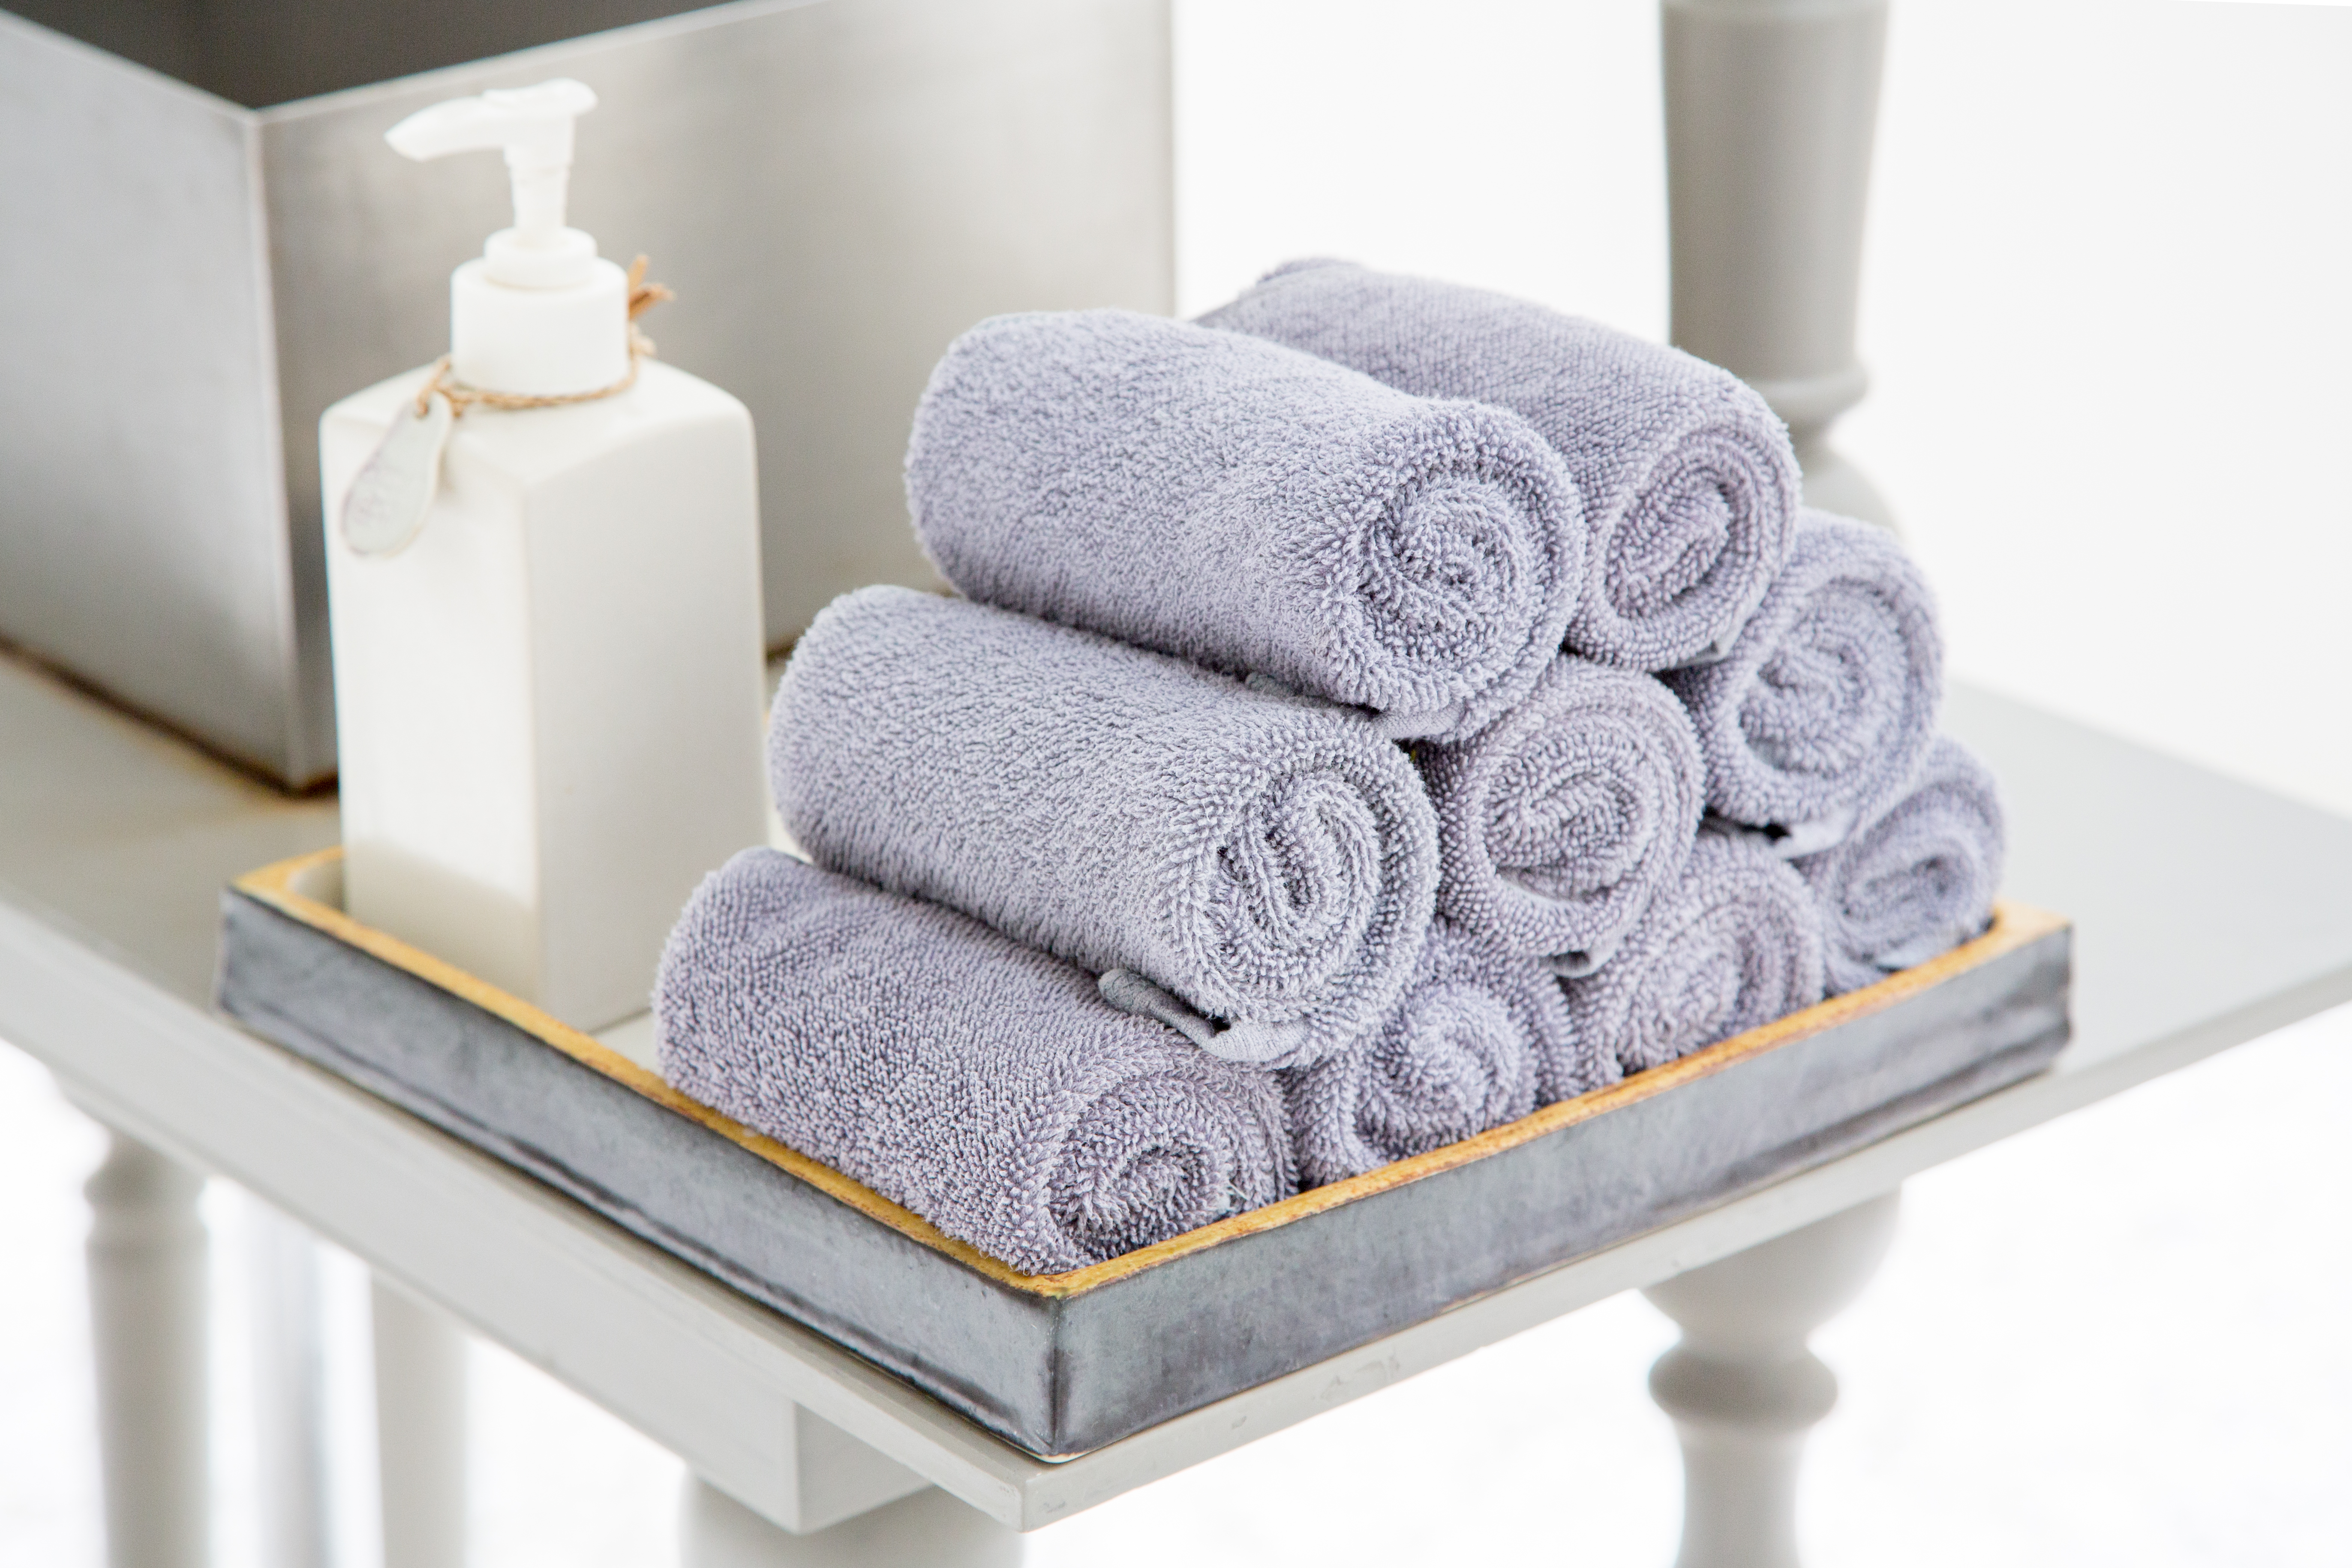 Dyed SPA towels.